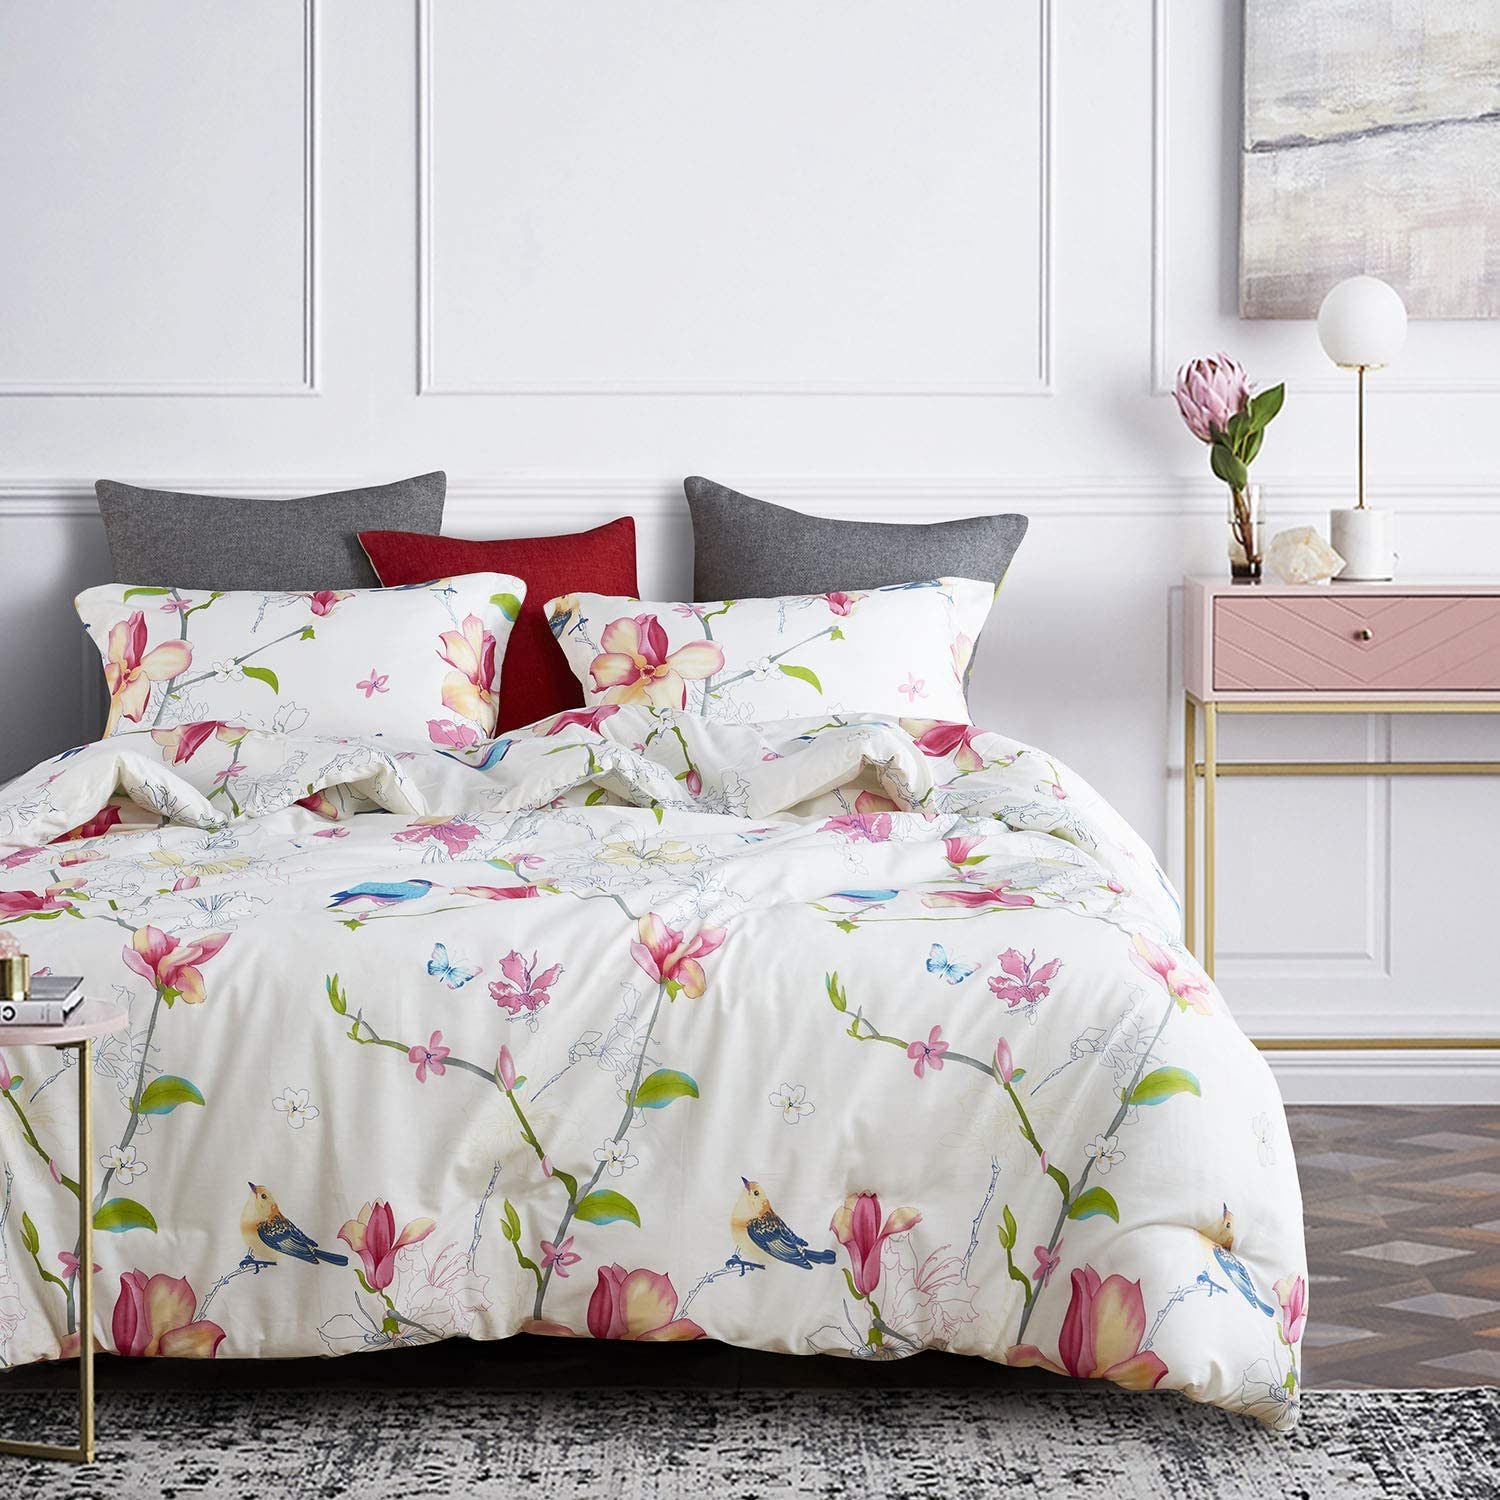 3pcs, King Size Botanical Flowers Pattern Printed Floral Comforter Set Wake In Cloud 100/% Cotton Fabric with Soft Microfiber Inner Fill Bedding